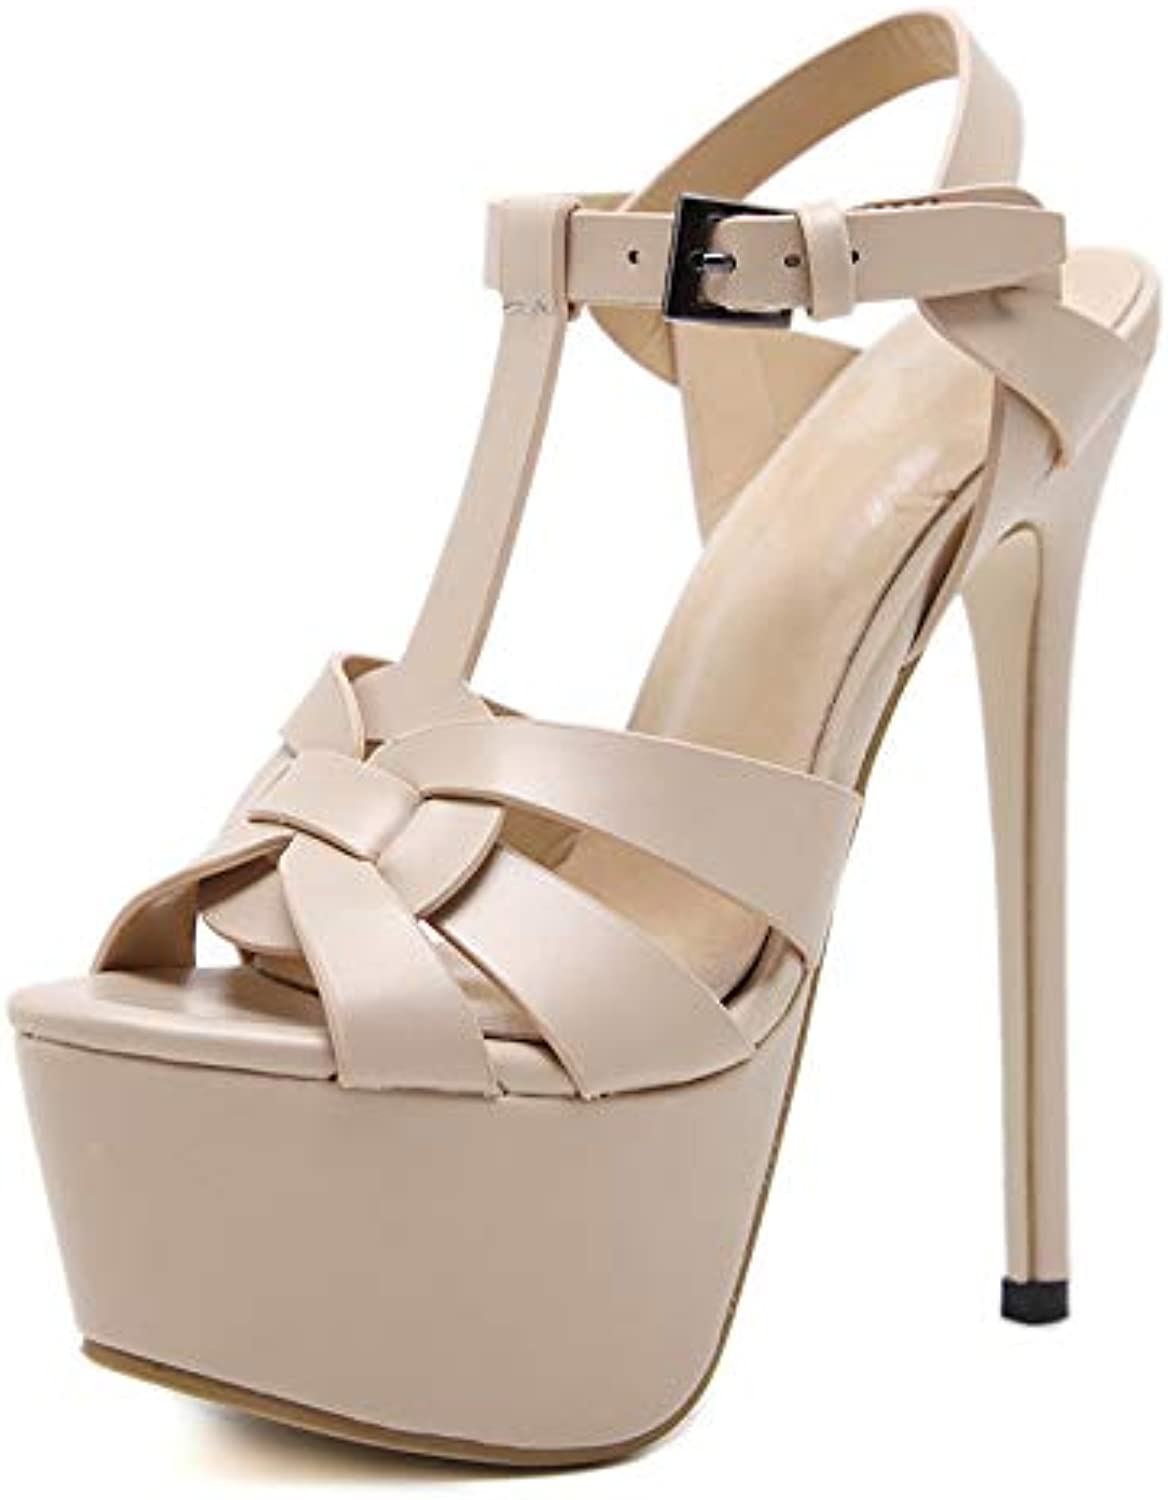 Duduxiaomaibu Women's Cut Out Ankle Strap High Heel - Open Toe Sandal Pump - Chunky Heel Platform shoes